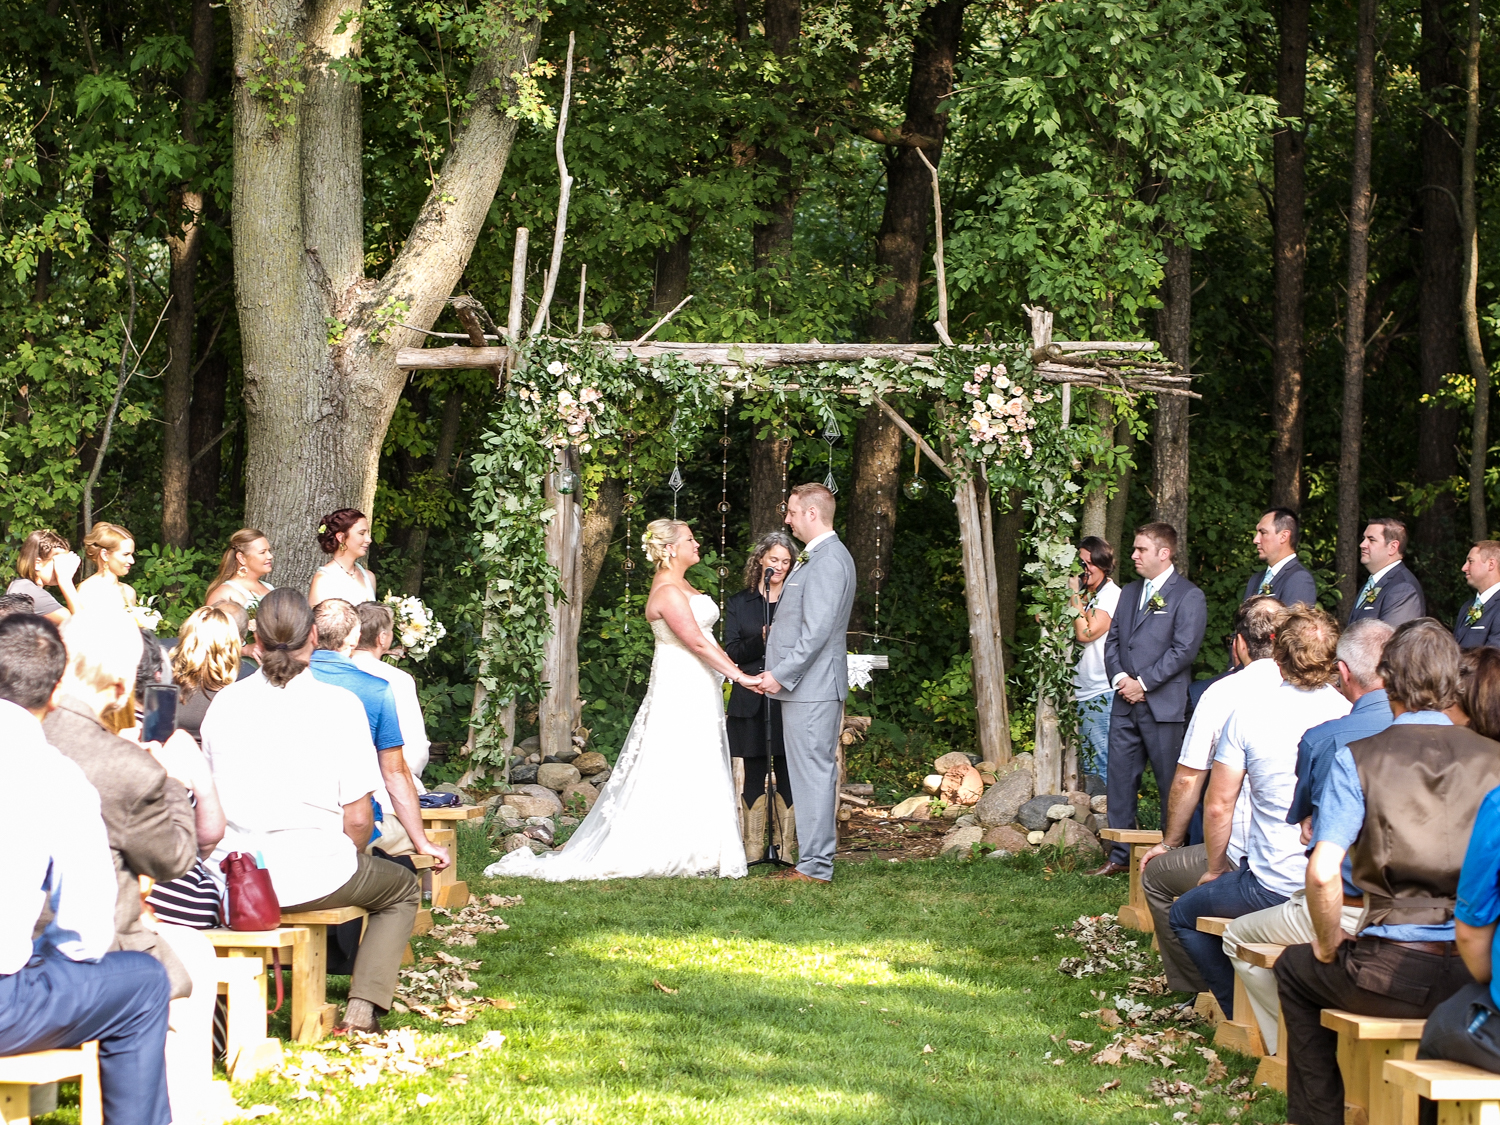 Wedding in the Woods at The Gardens